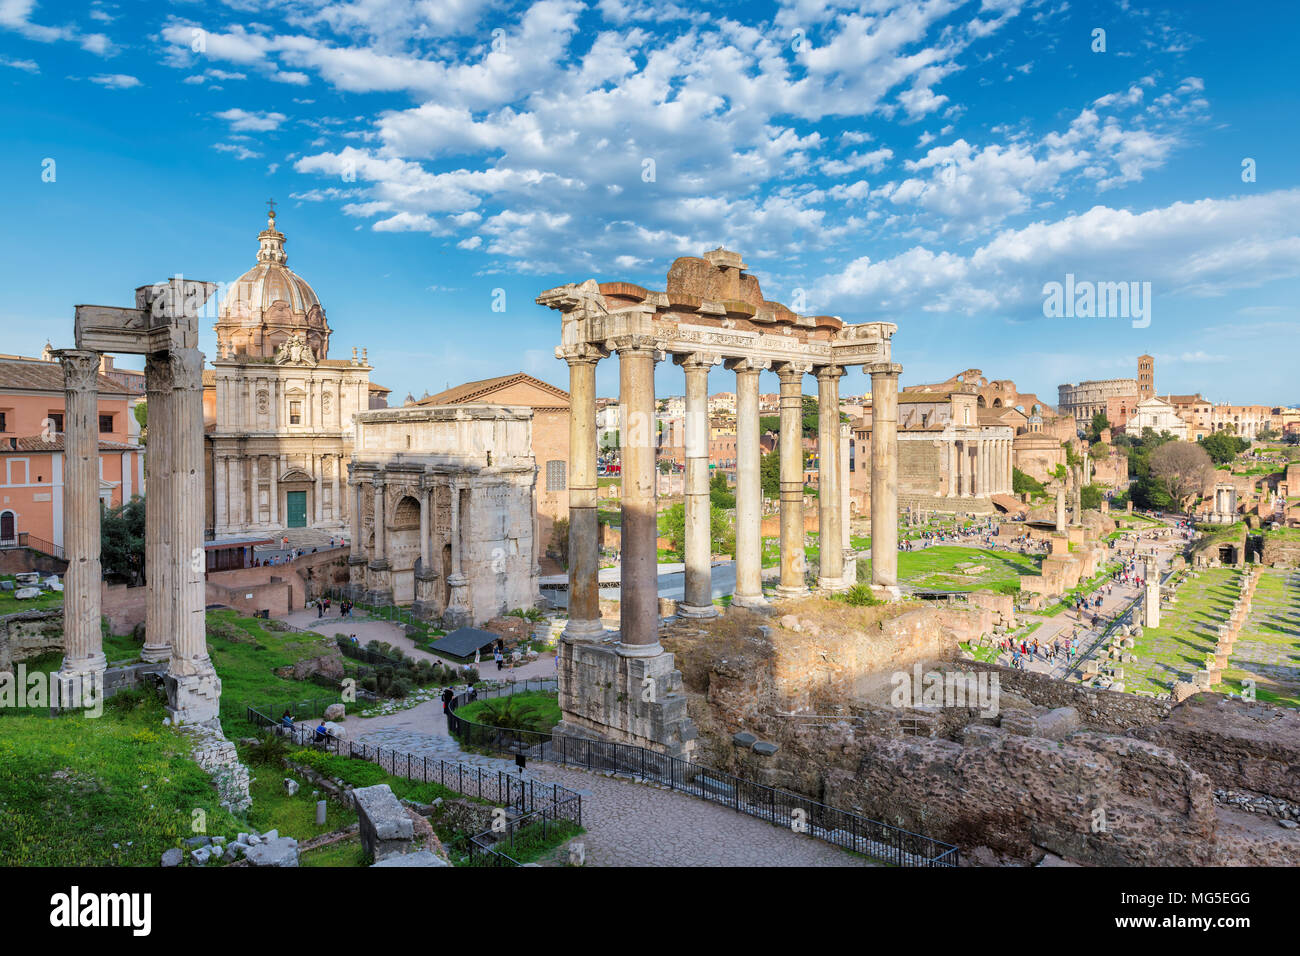 Roman Forum in Rome, Italy during sunset. Stock Photo